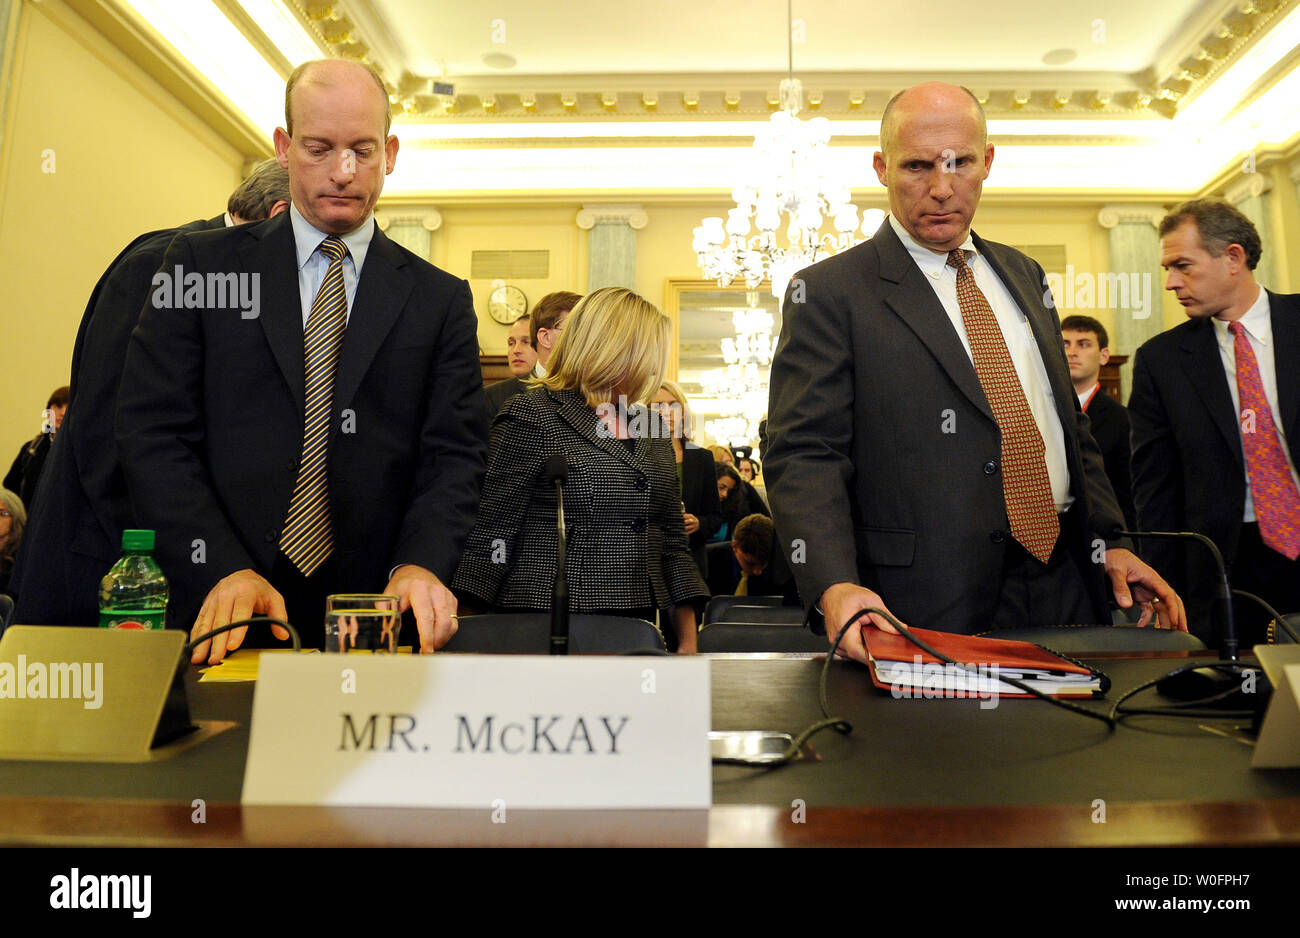 Lamar McKay, chairman and president of BP America Inc., and Steven Newman, president and CEO of Transocean Ltd., (L to  R) arrive to testify during a Senate Commerce, Science and Transportation Committee hearing on response efforts to the Gulf Coast oil spill on Capitol Hill in Washington on May 18, 2010.   UPI/Roger L. Wollenberg - Stock Image